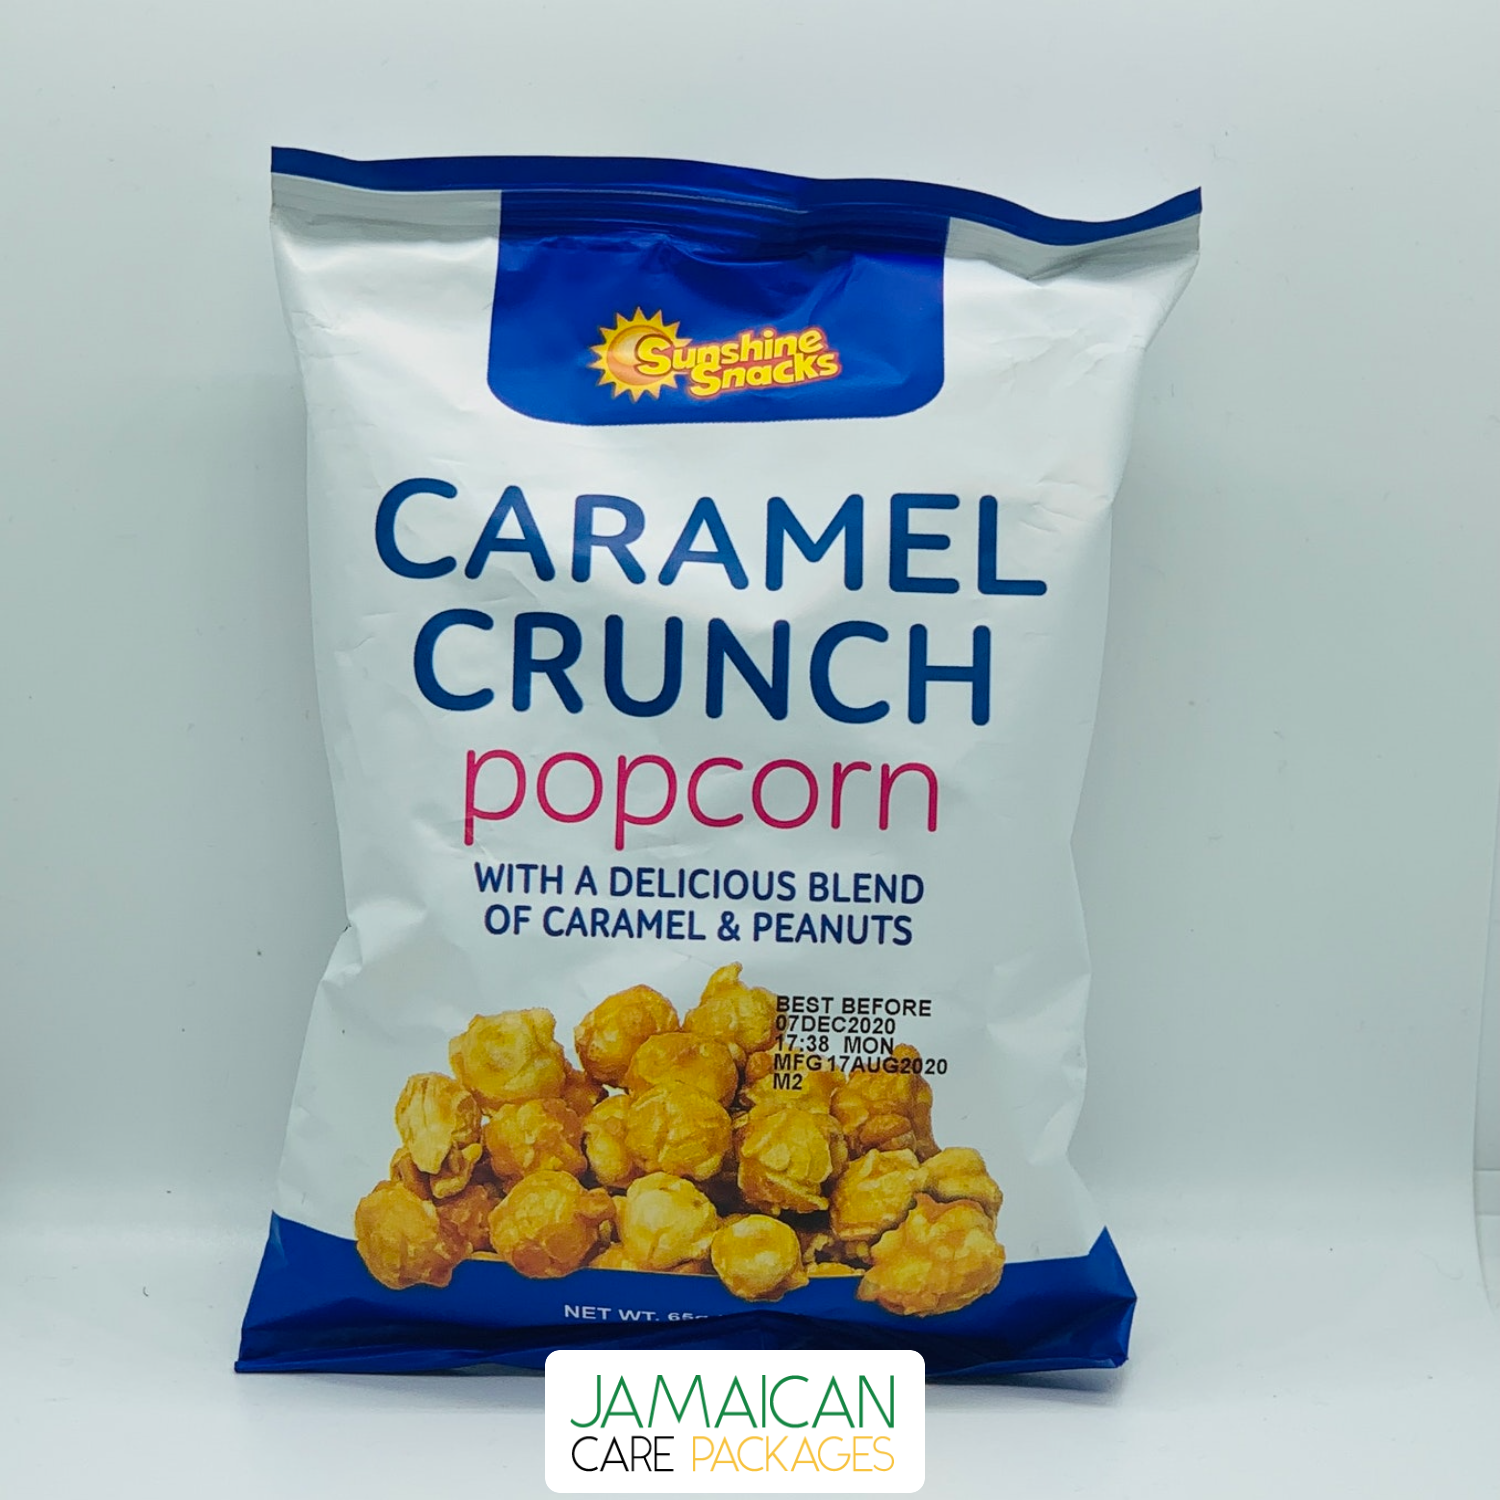 Caramel Crunch Popcorn - Med - 65g (Bundle of 2)